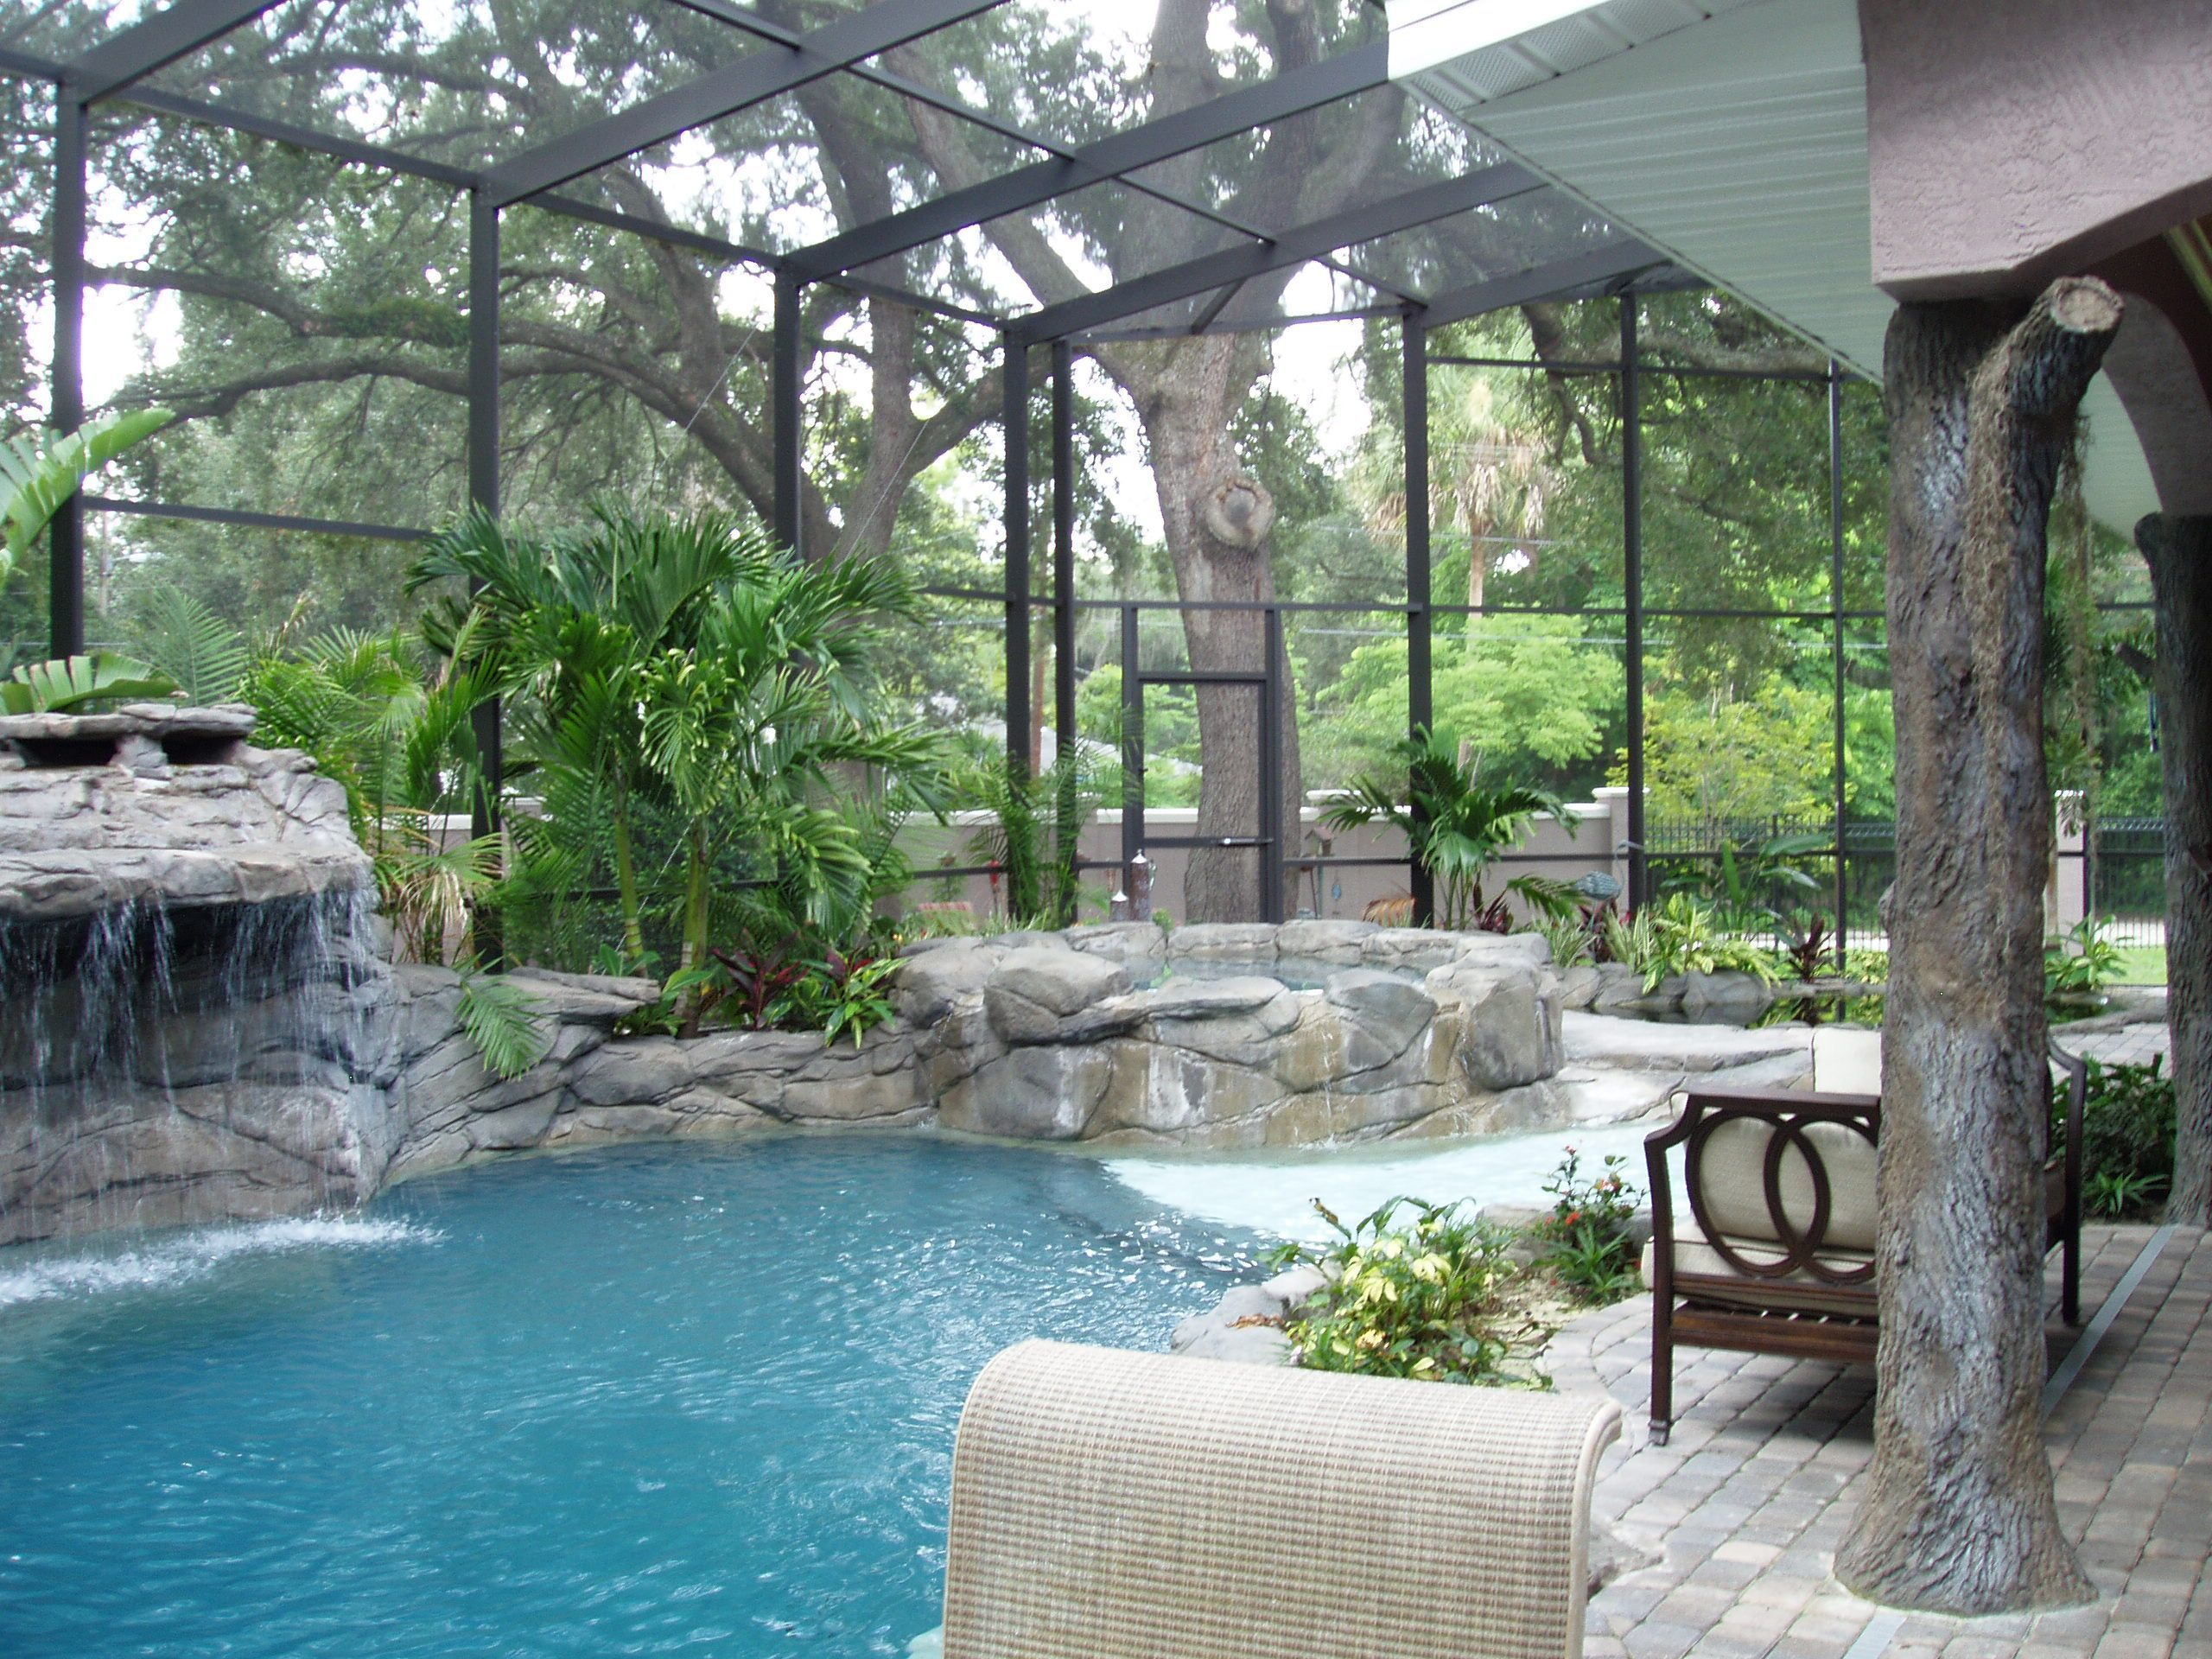 Beach Entry Pool Faux Log Lanai Post And Waterfall With Rock Spa And Beach Entry All Enclose Indoor Swimming Pool Design Indoor Swimming Pools Beach Entry Pool